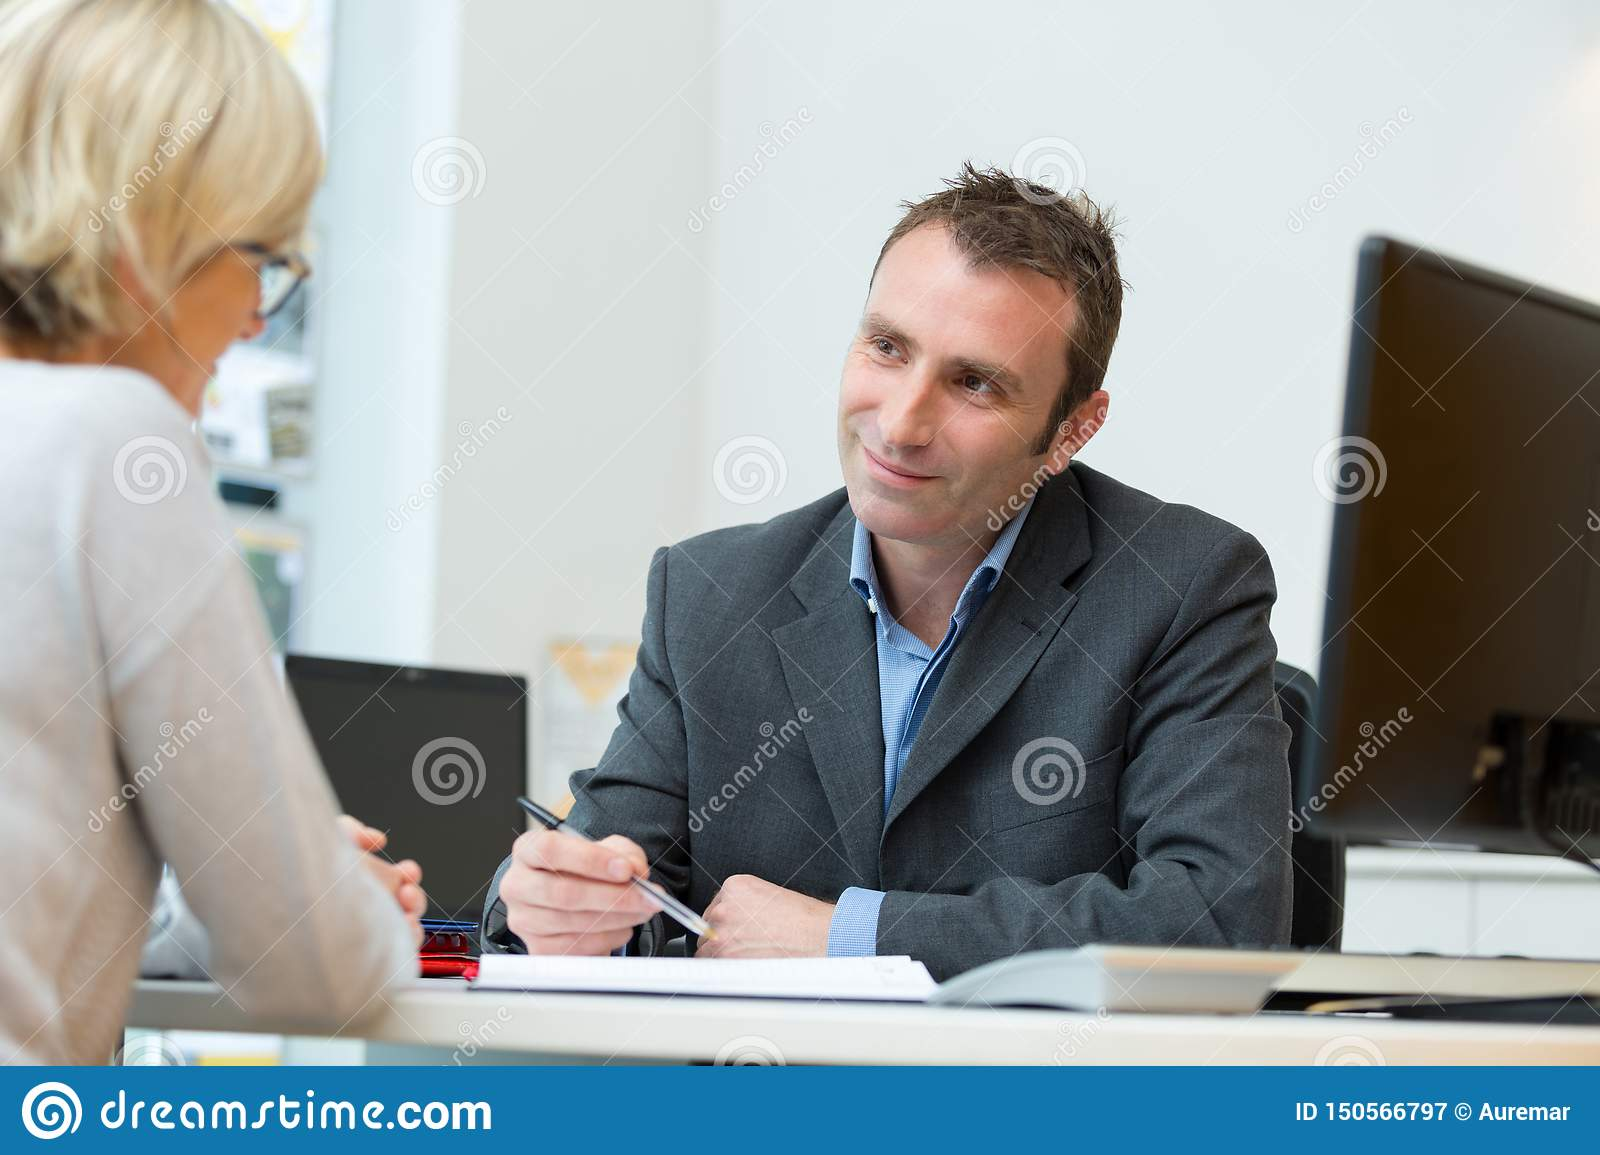 Friendly smiling businessman and businesswoman in office